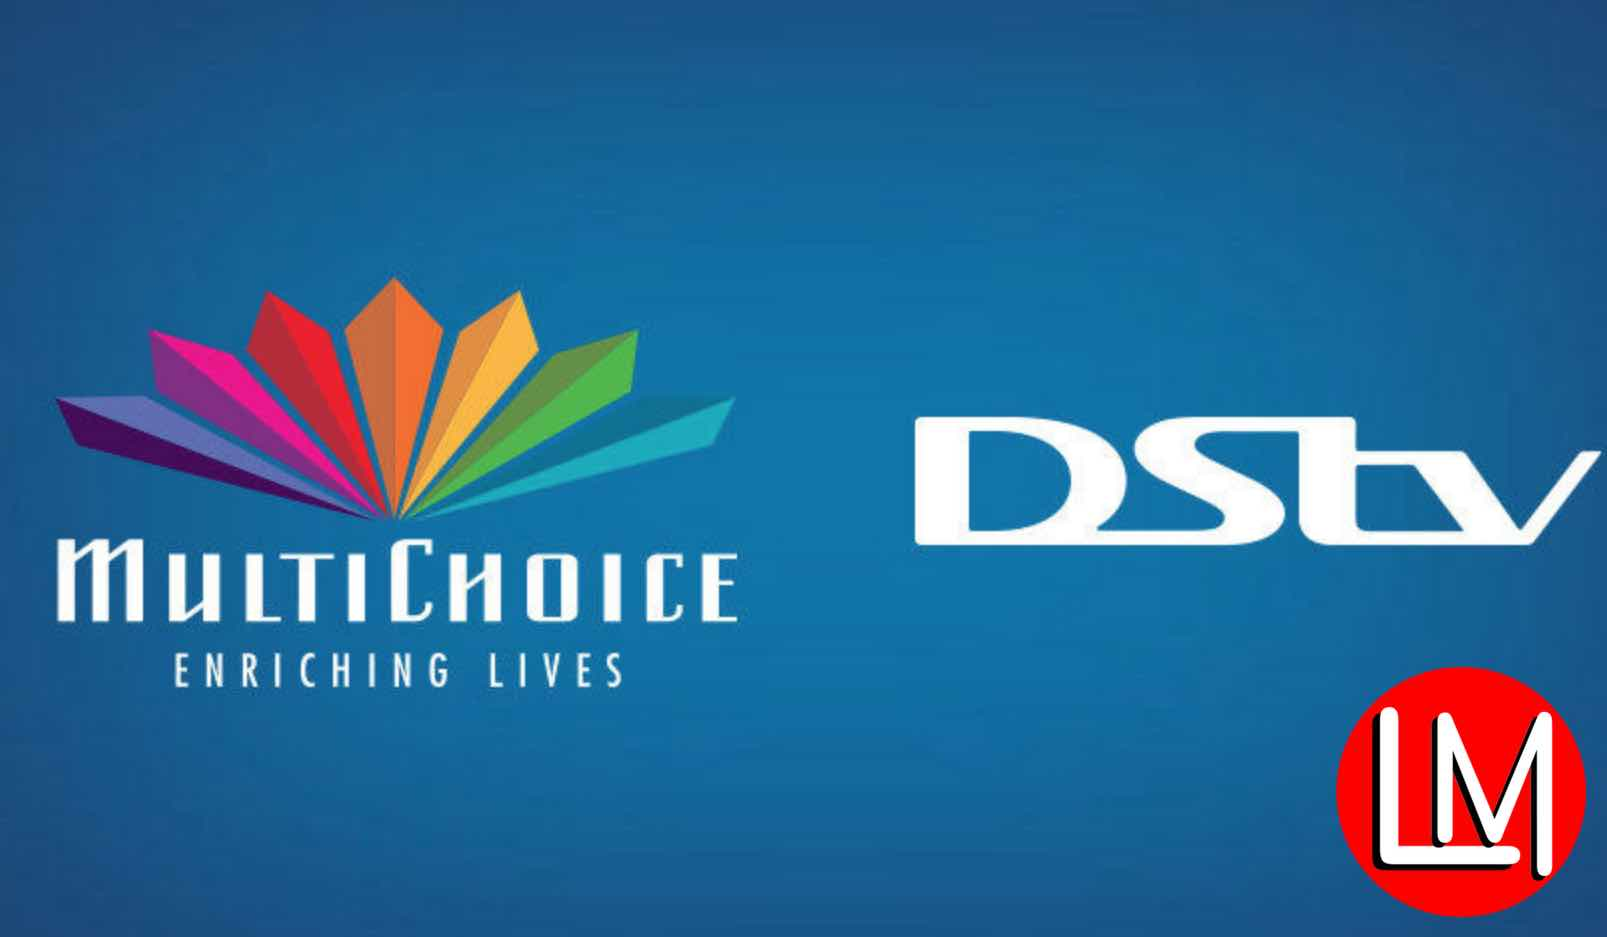 It is possible to get official DStv/ GOtv Nigeria subscription for as low as 30% discount: However, there might be some other issues